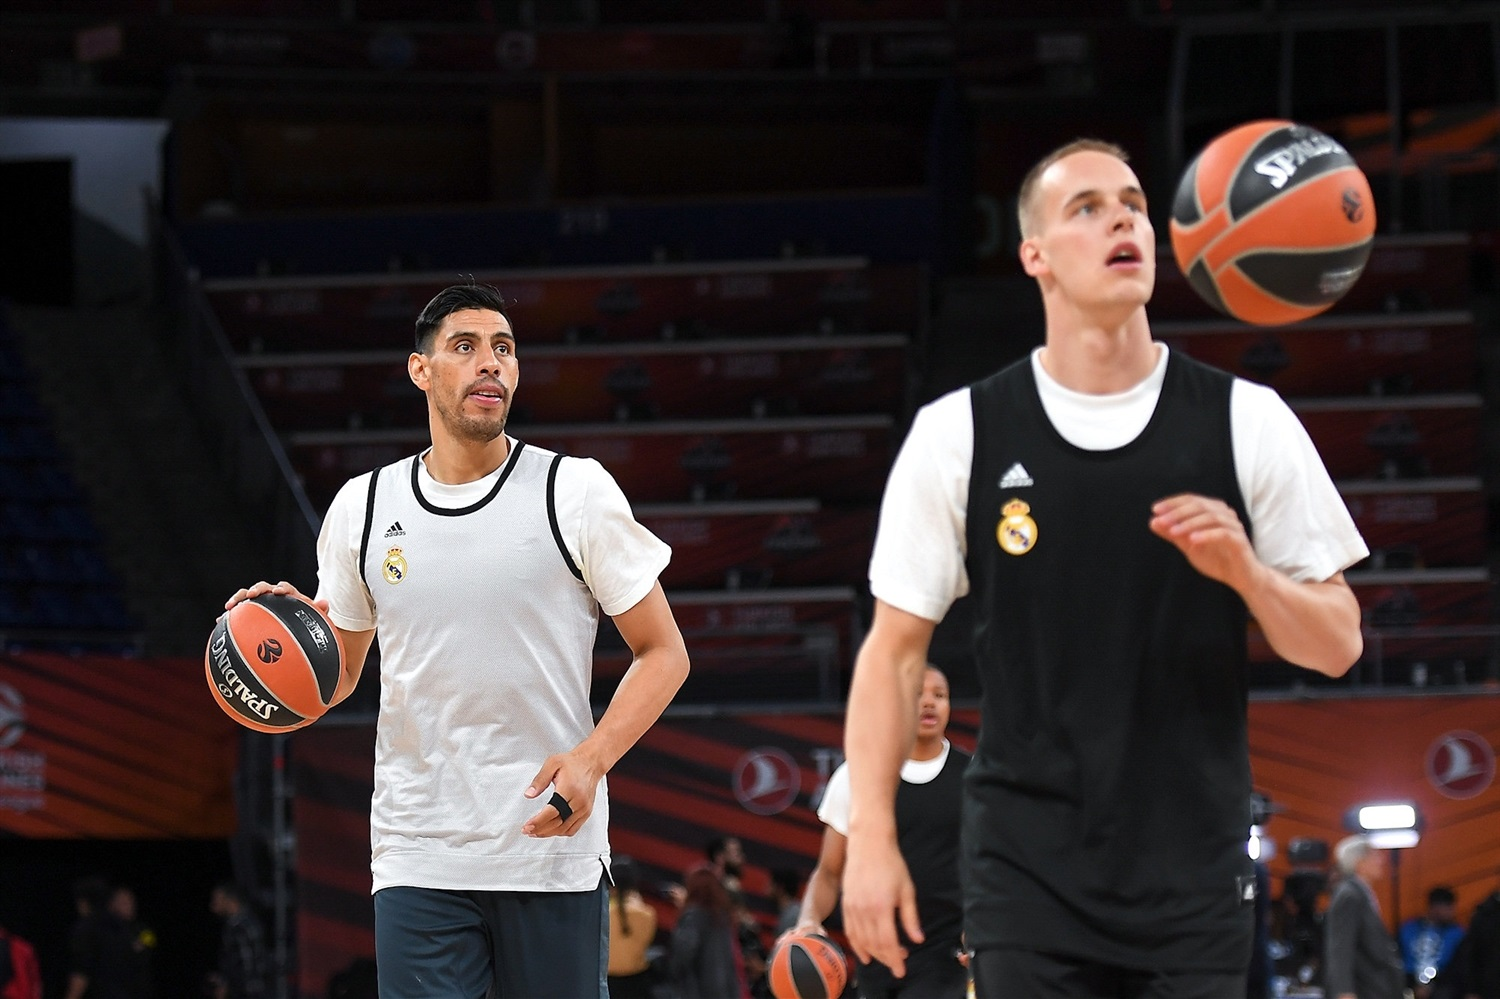 Gustavo Ayon - Real Madrid practices - Final Four Vitoria-Gasteiz 2019 - EB18